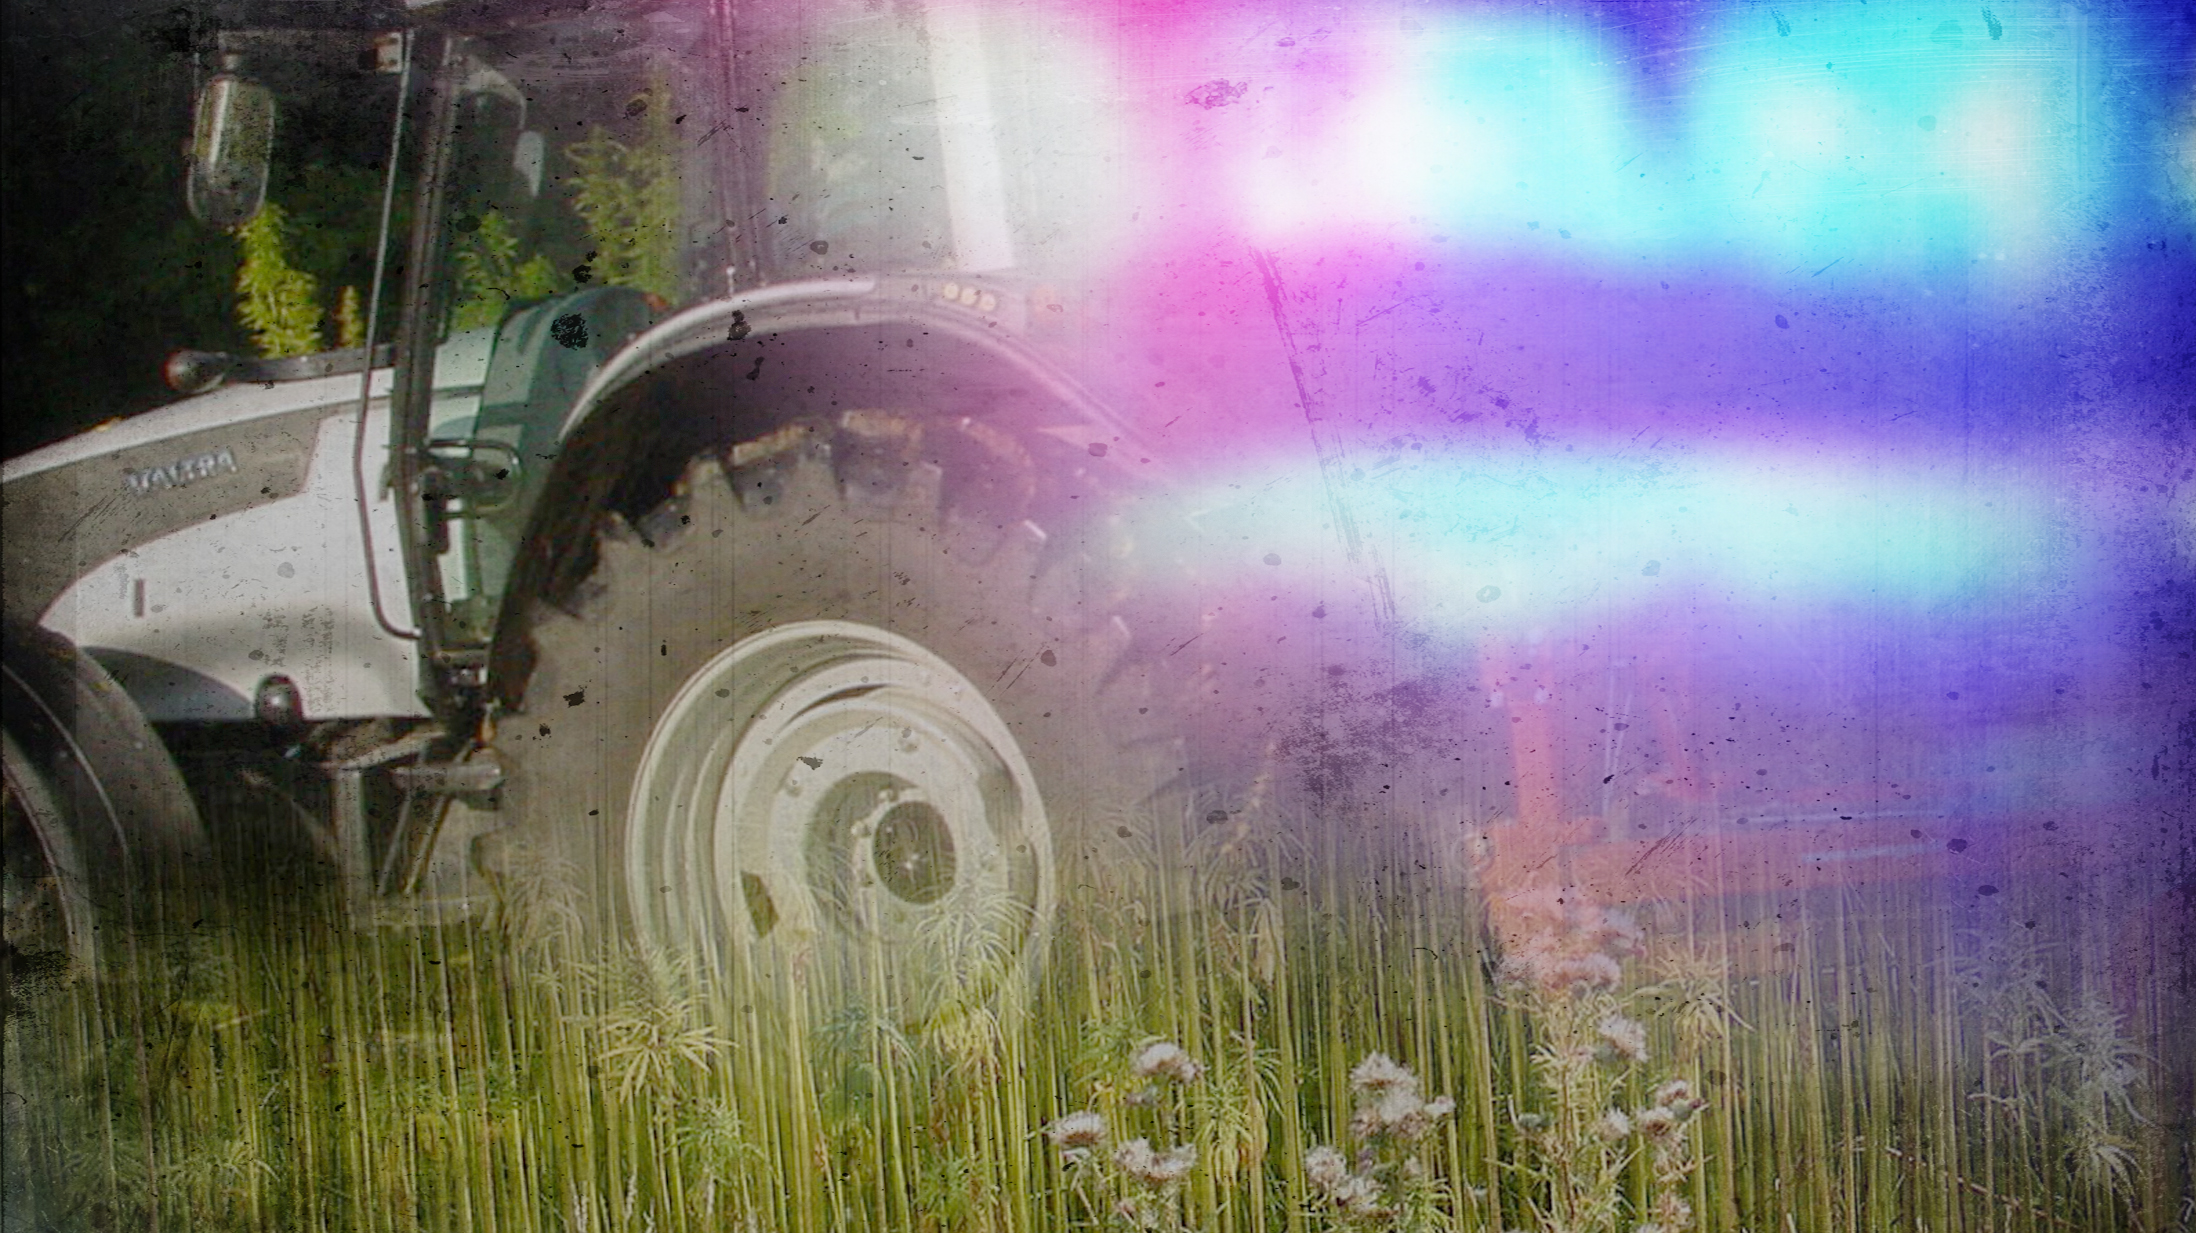 Agriculture Accident WEB_1467725664891-118809198.jpg